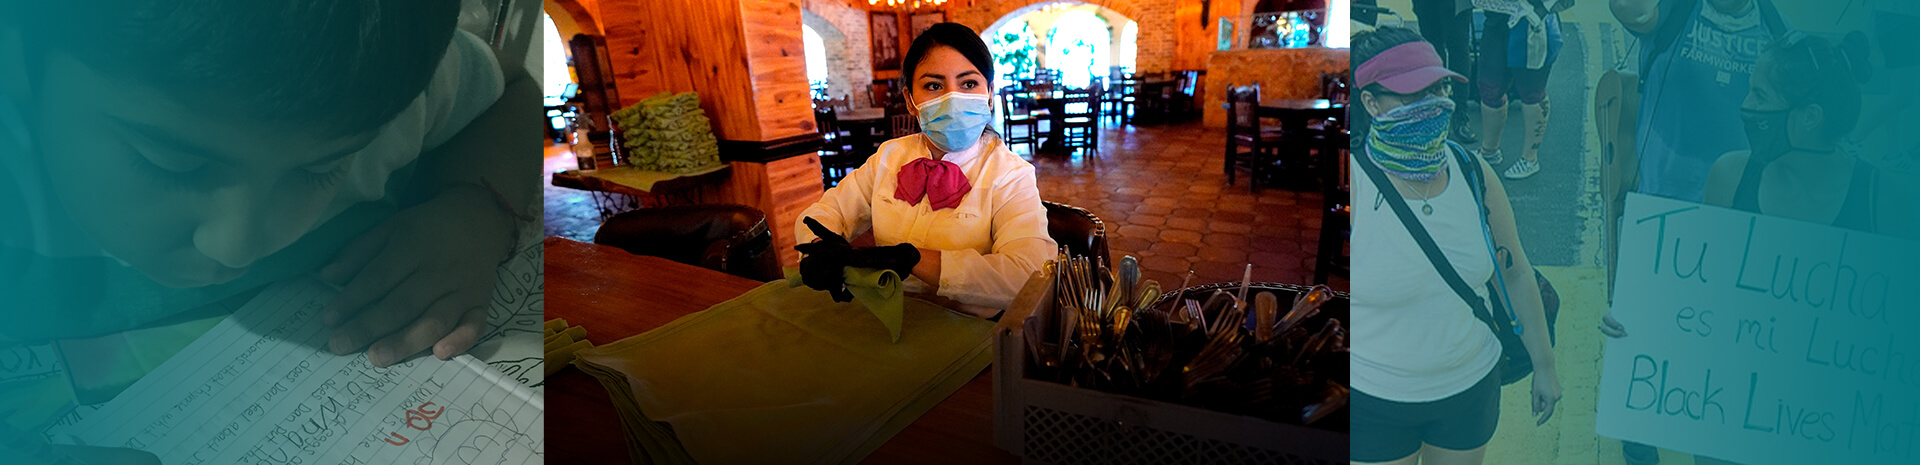 slider image with woman working in restaurant